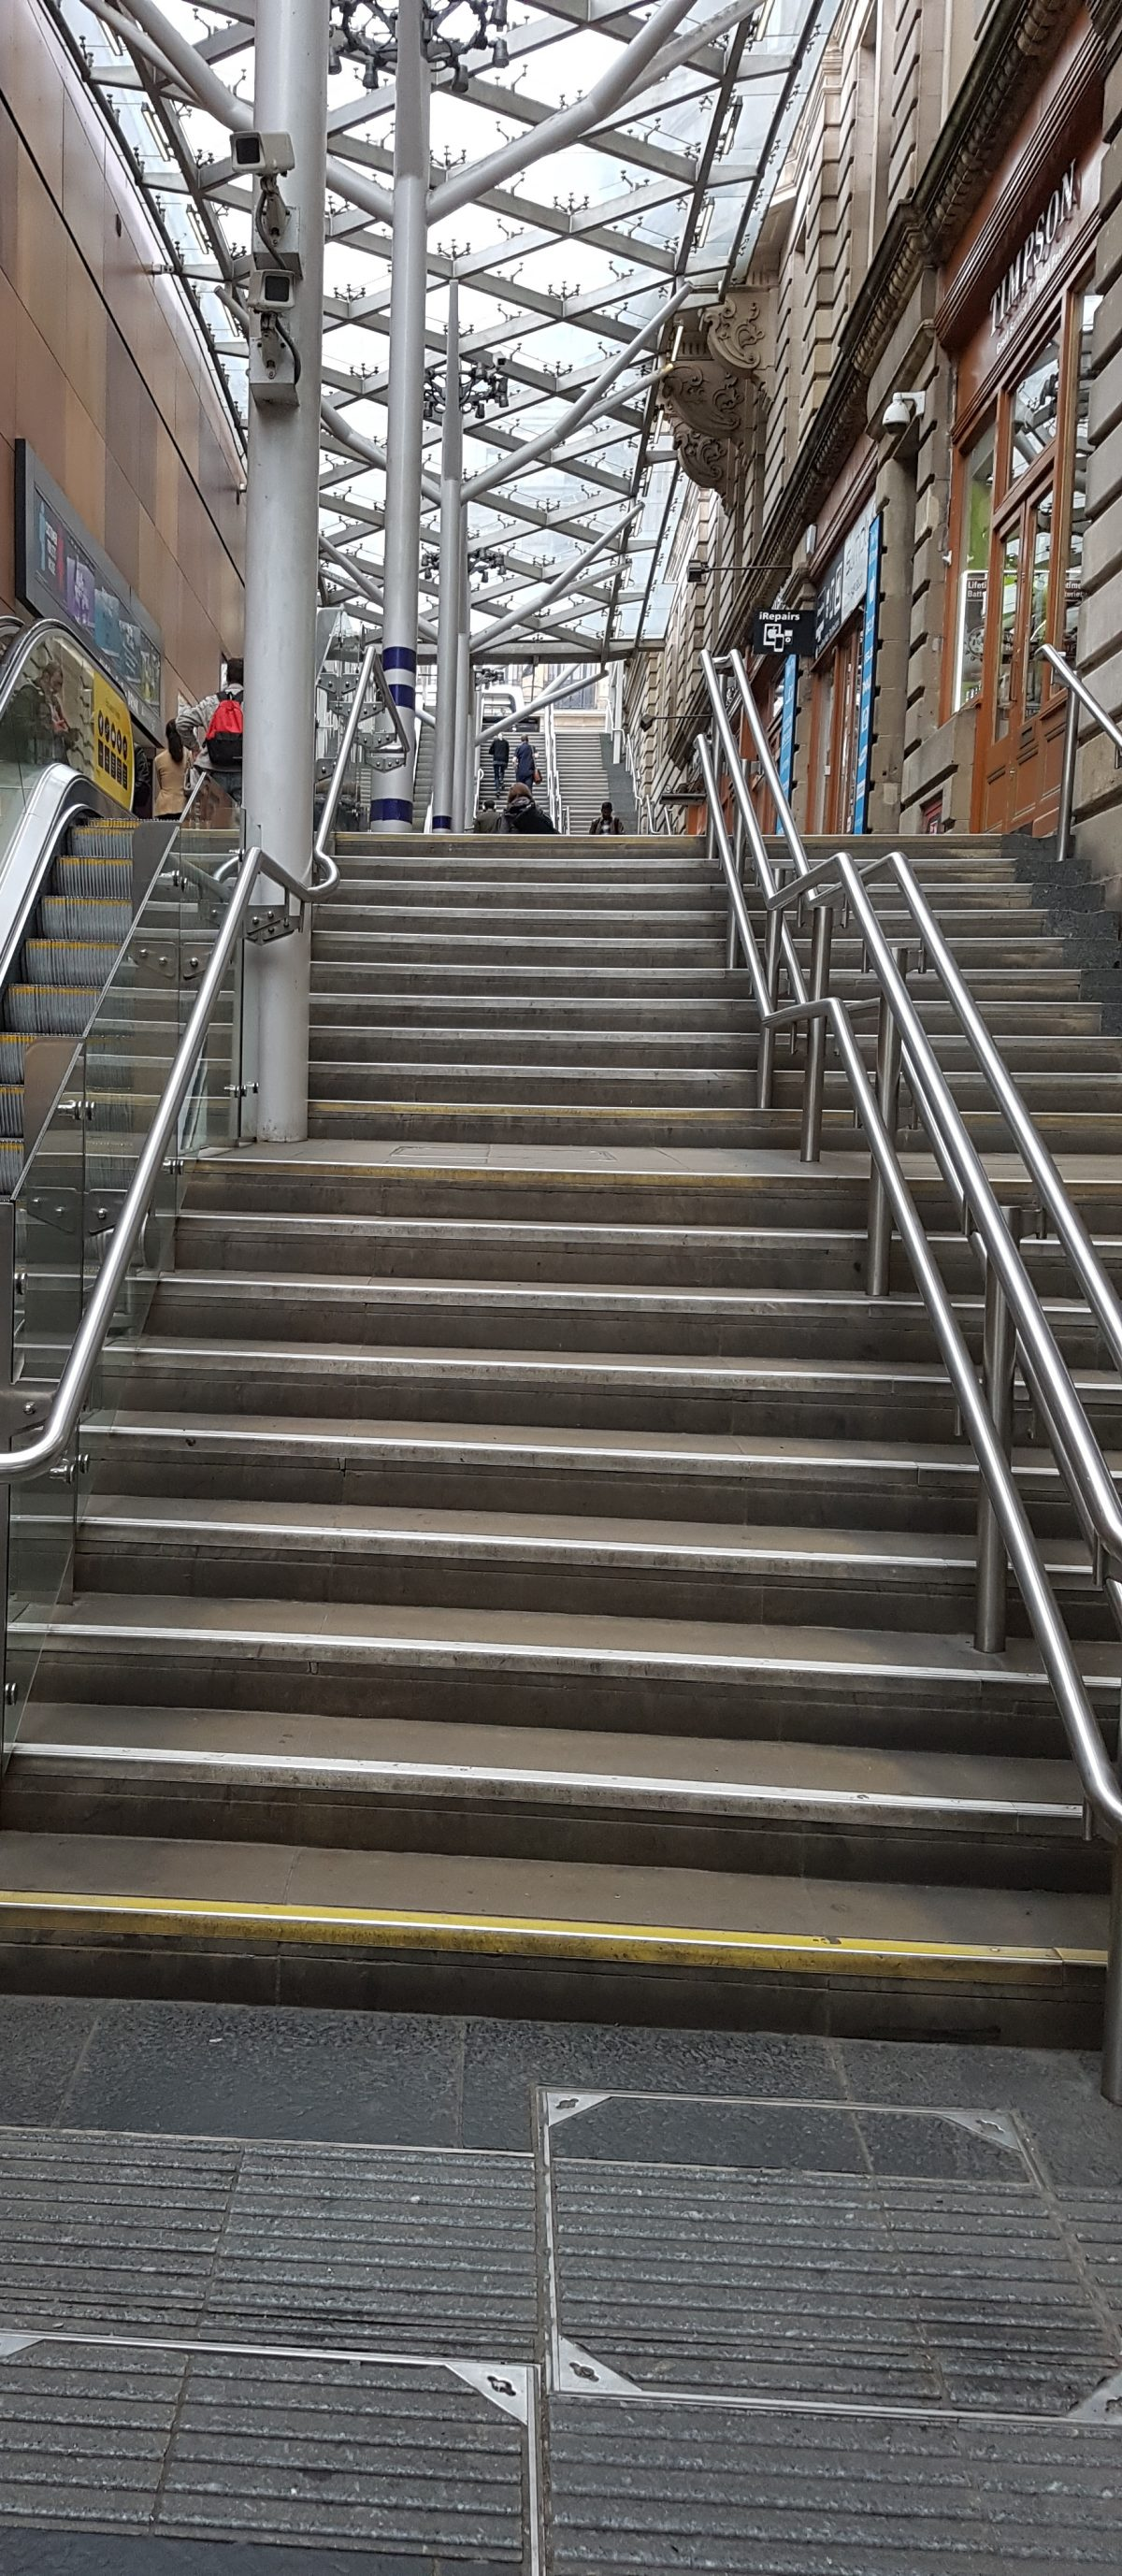 Steps at Waverley Station